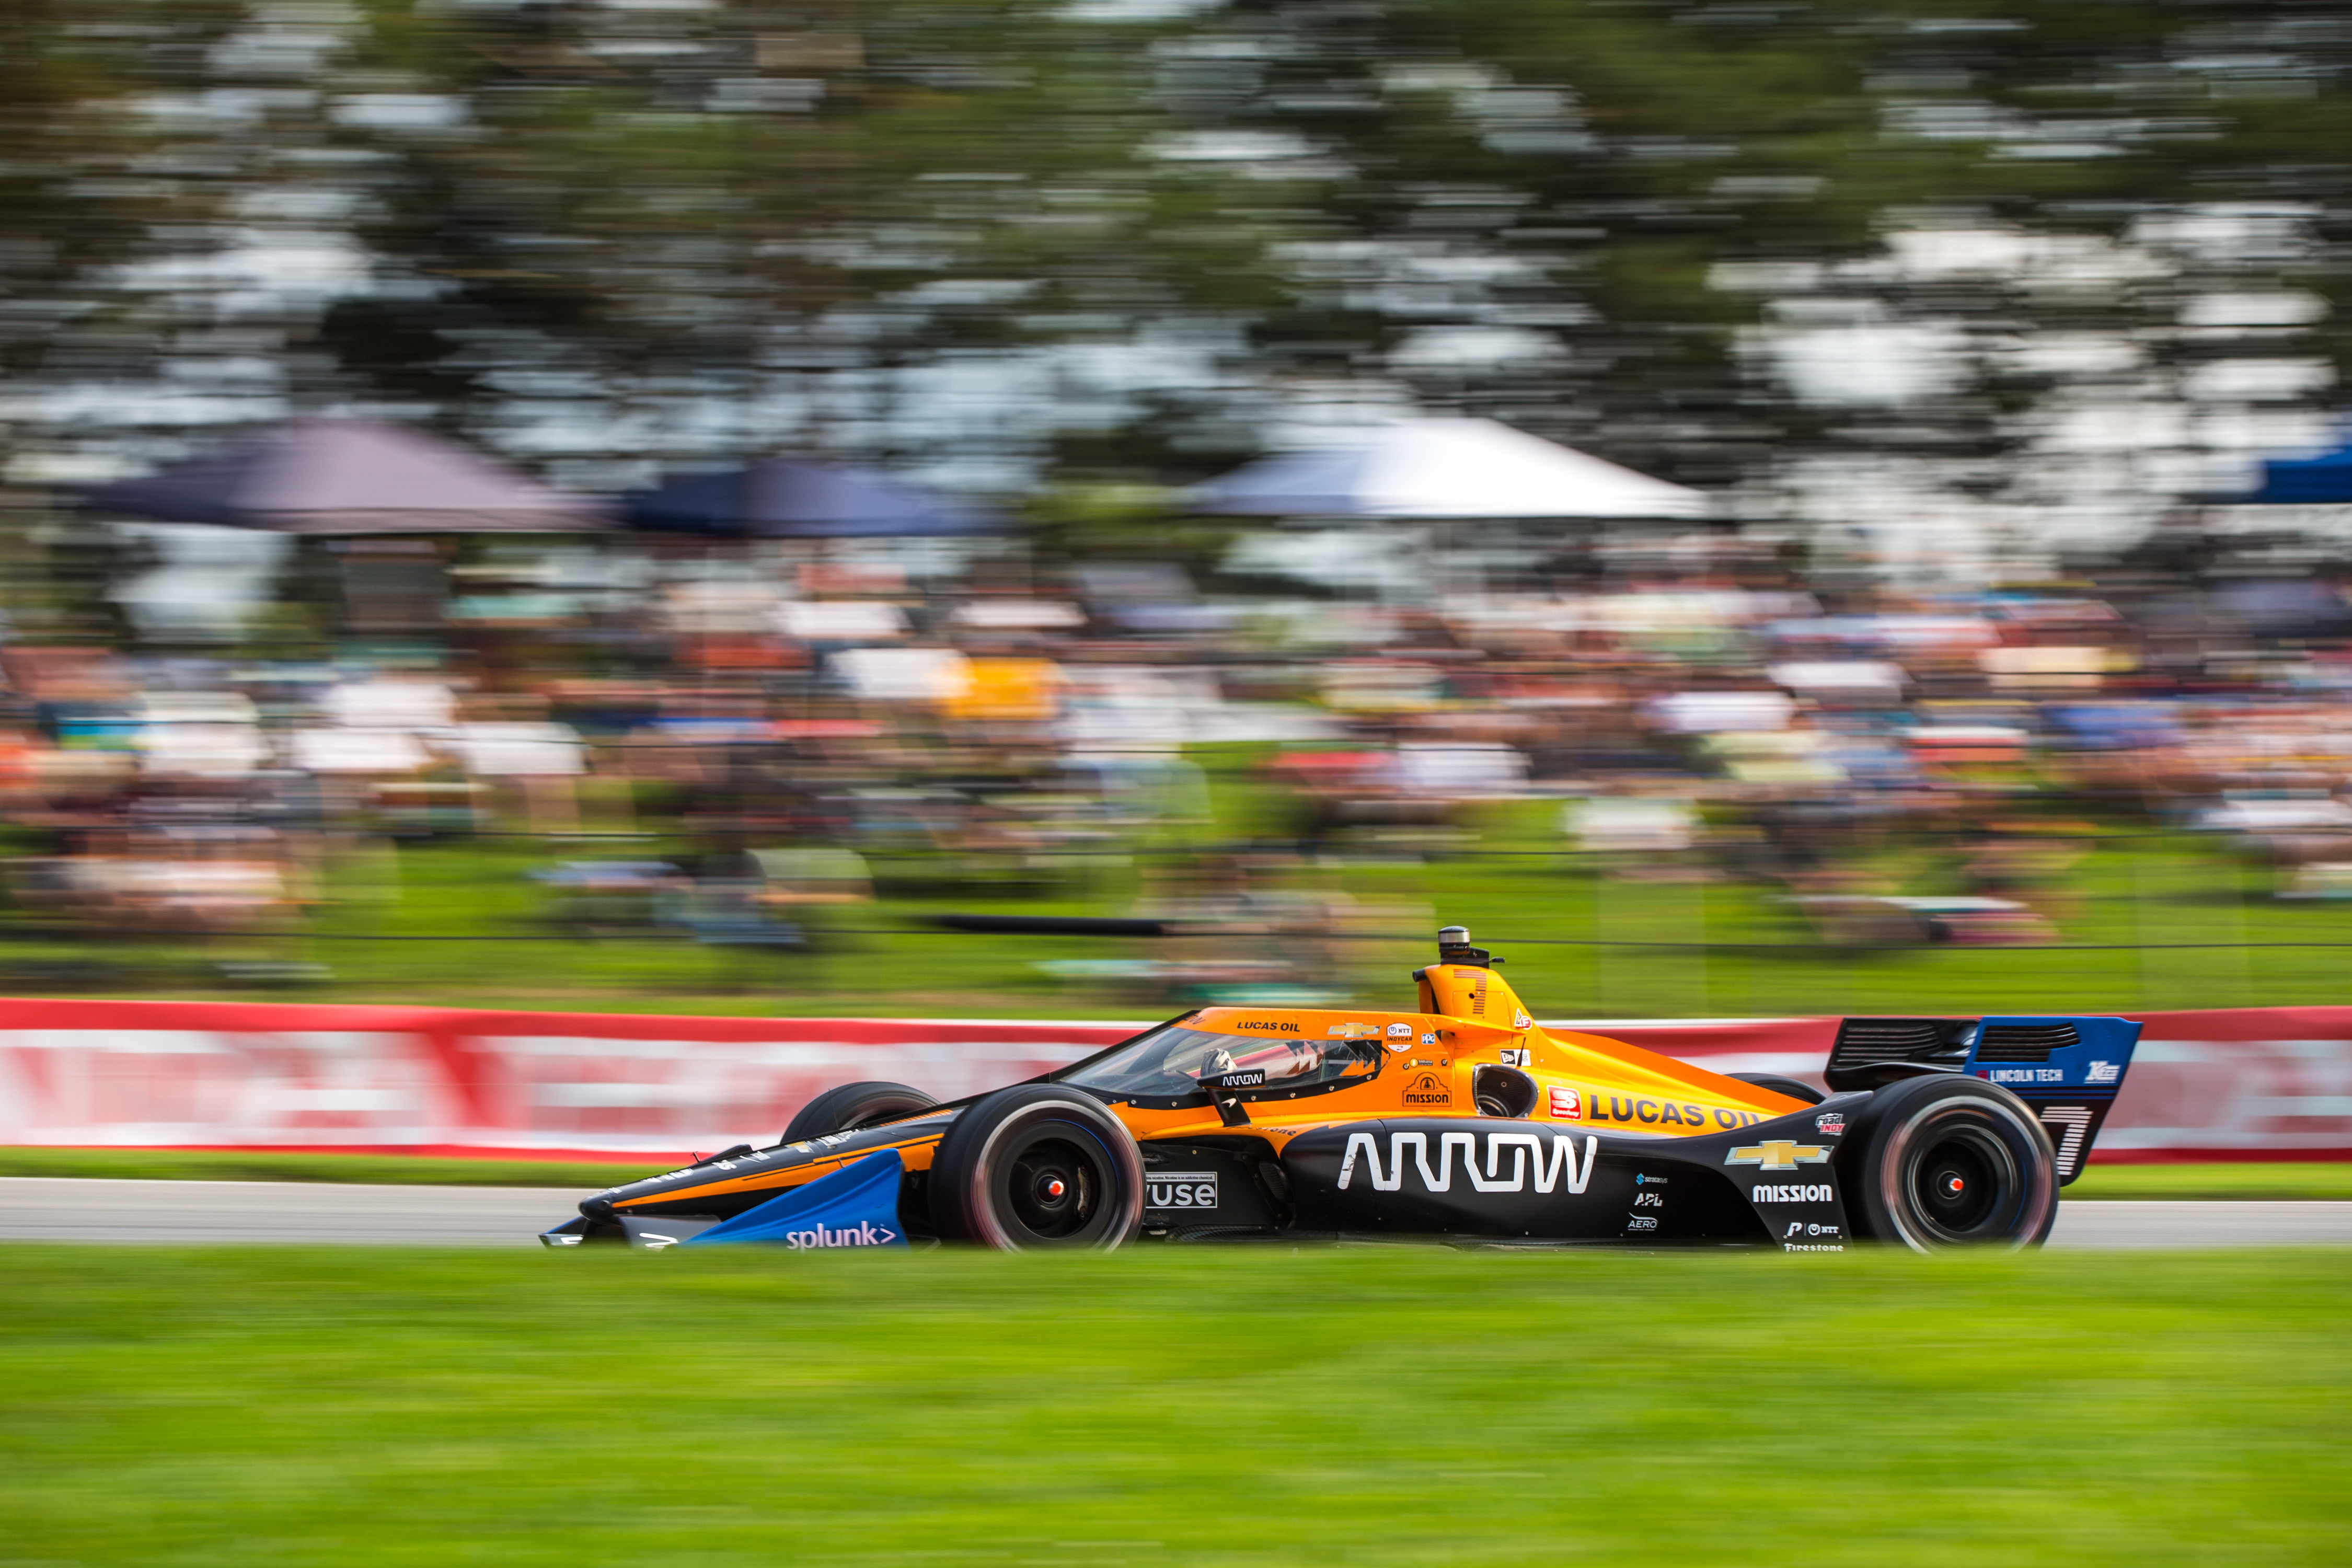 Ntt Indycar Series Honda Indy 200 At Mid Ohio